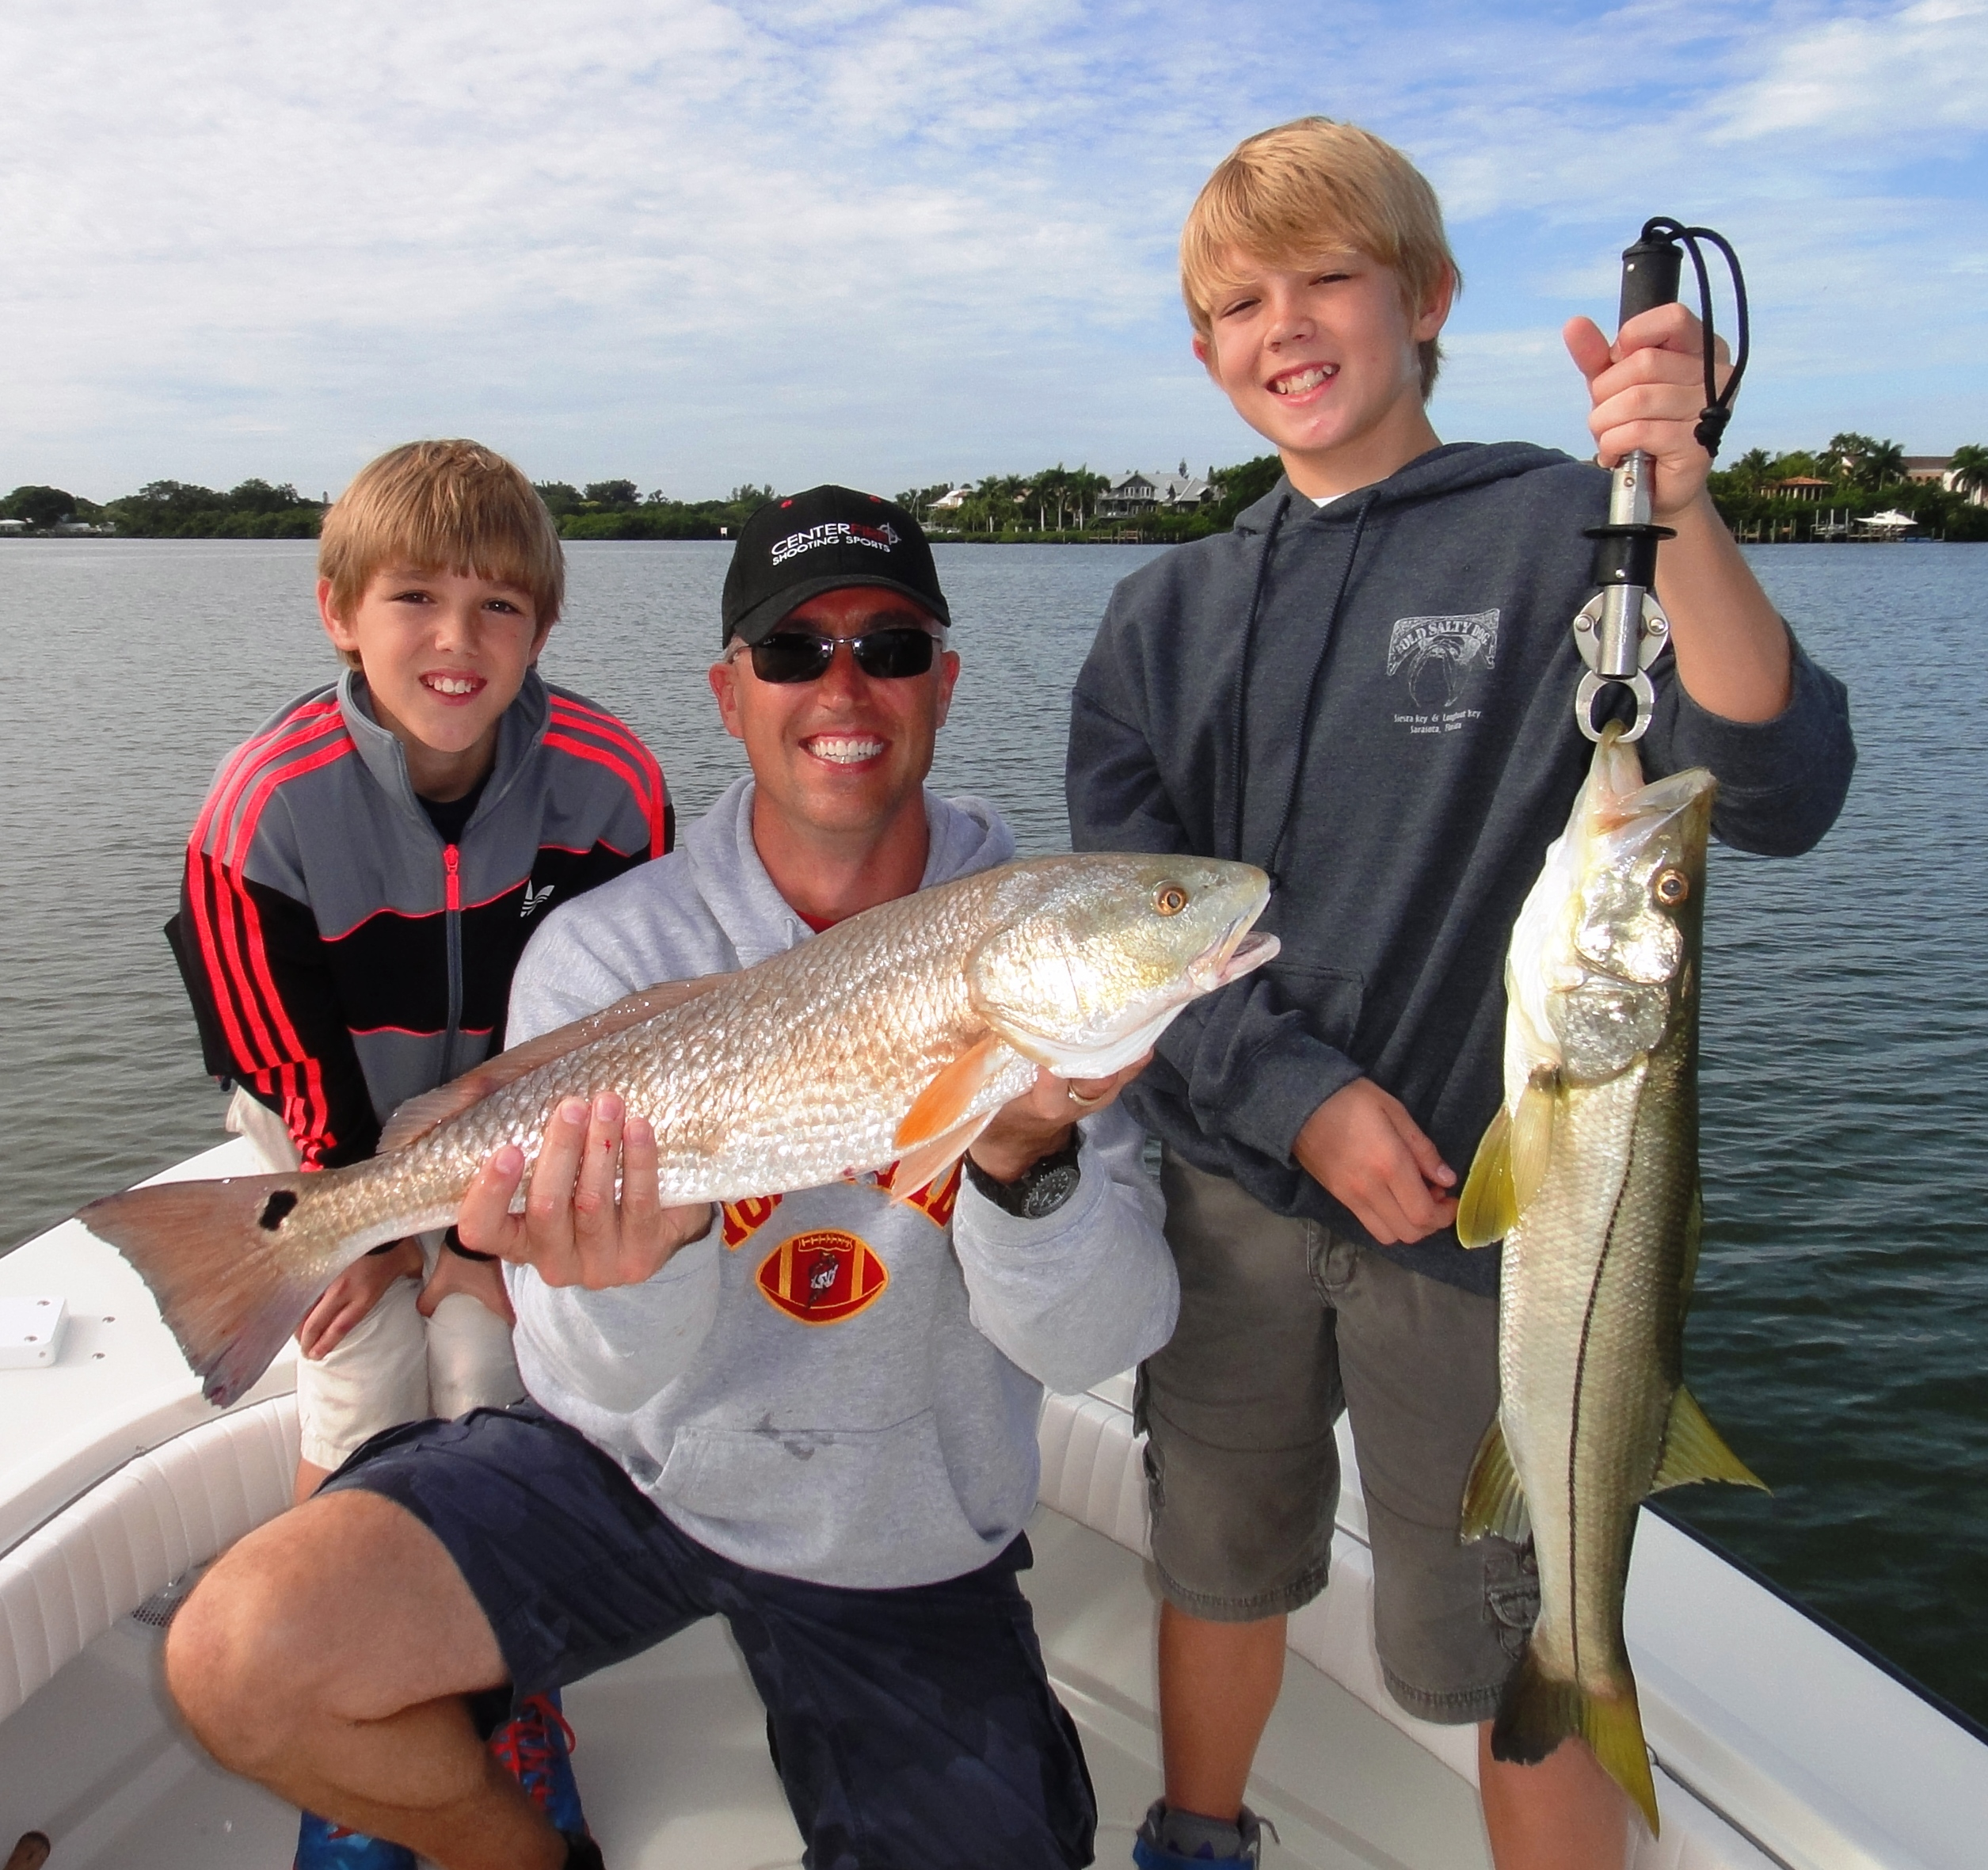 Rates sarasota fishing charters for Sarasota fishing charters